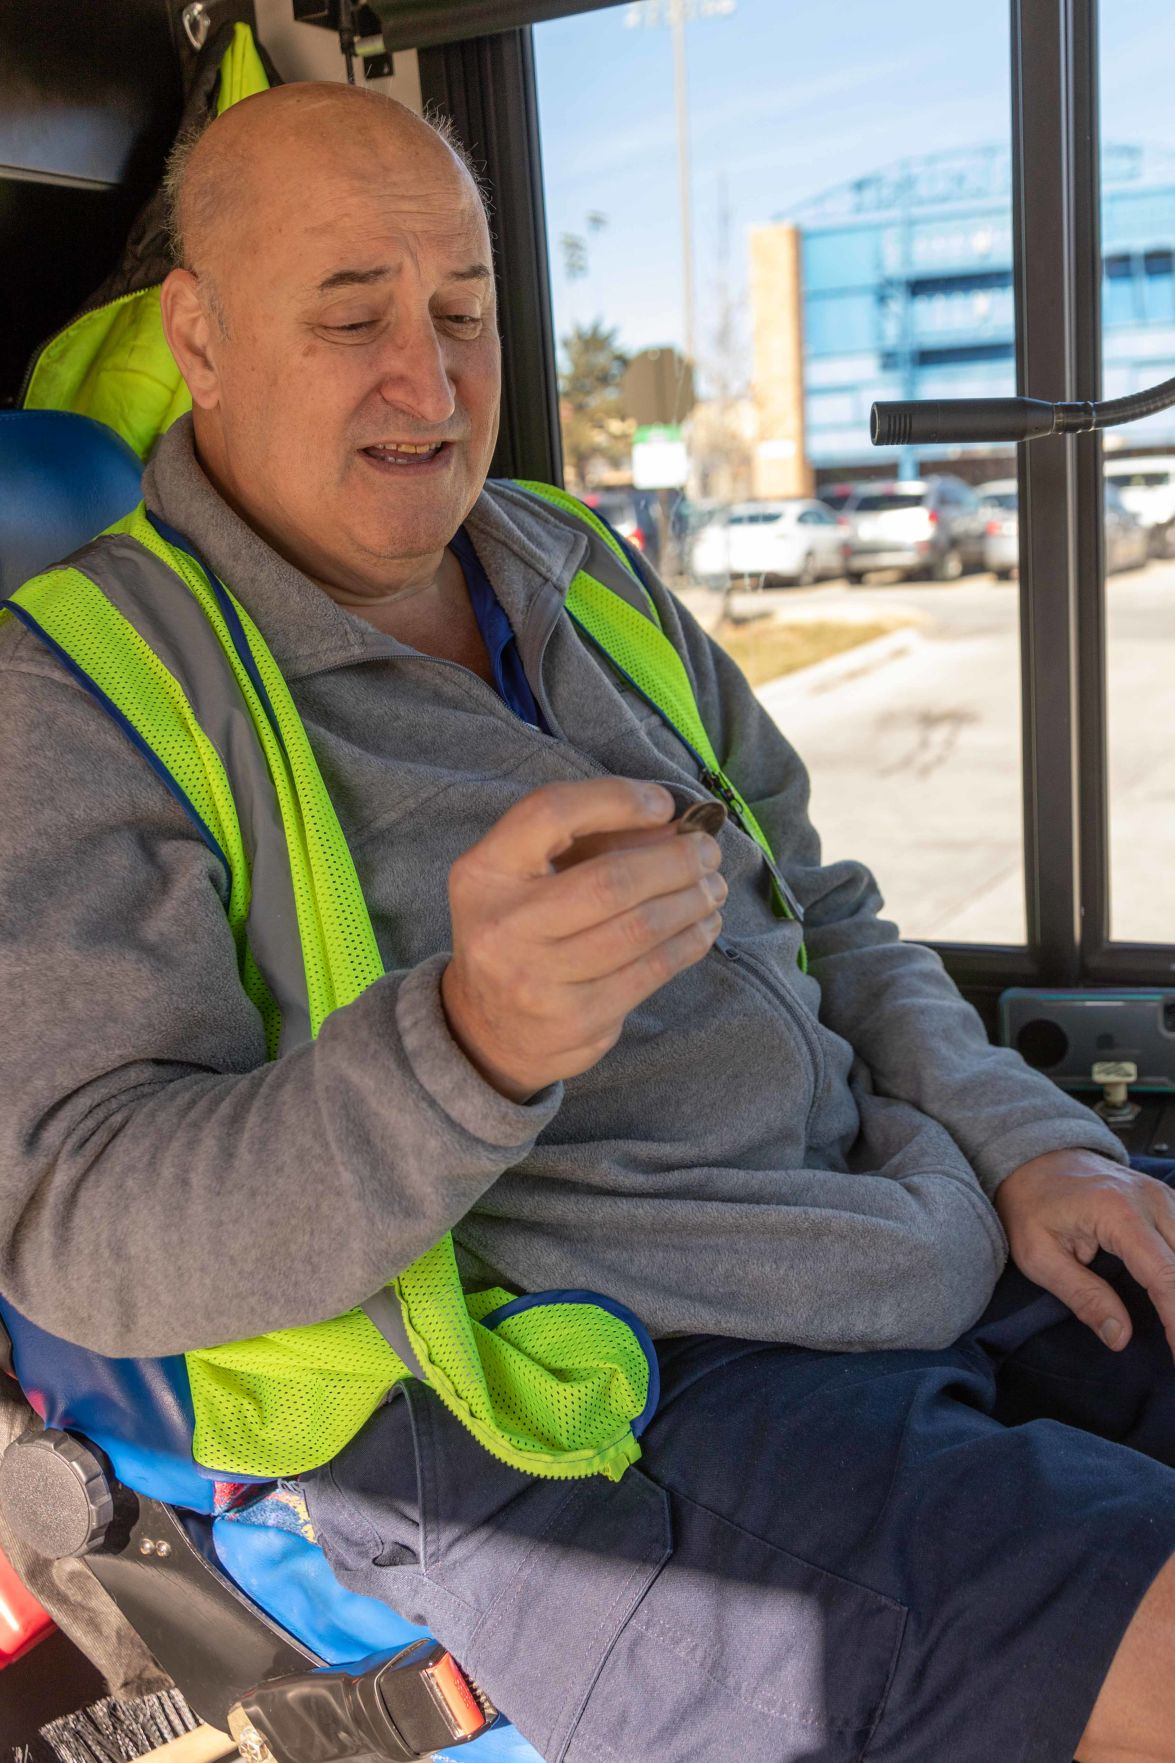 K.U. bus driver Rex Gardner performs a magic trick as he sits in his driver's seat